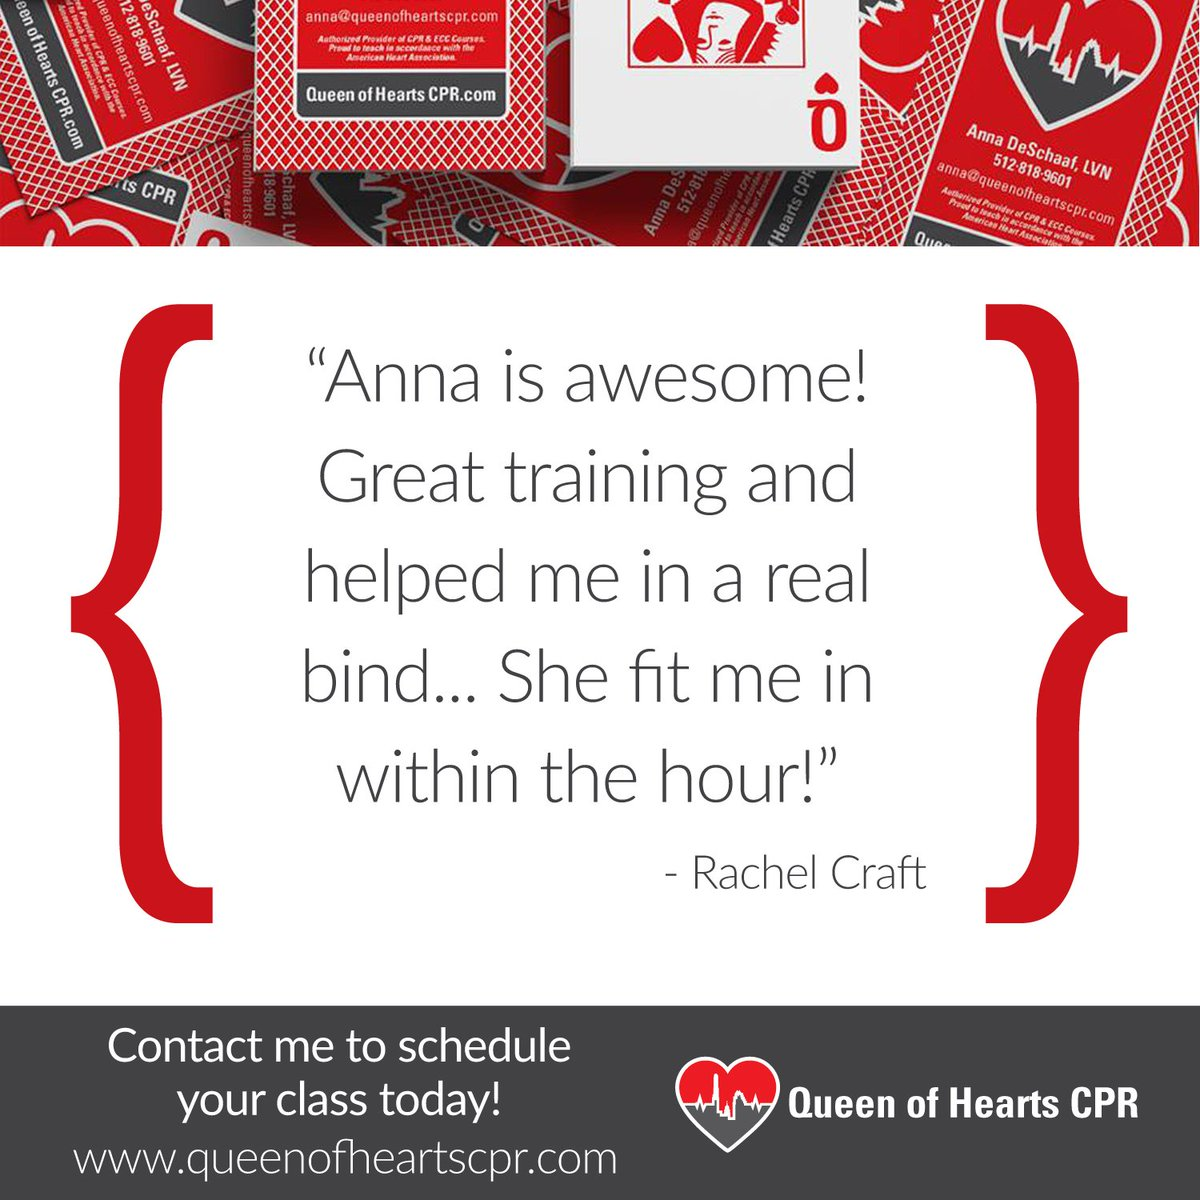 Queen of hearts cpr queenheartscpr twitter great training and helped me in a real bind kindwords testimonial learncprpicitterkybe4rxvcp xflitez Choice Image